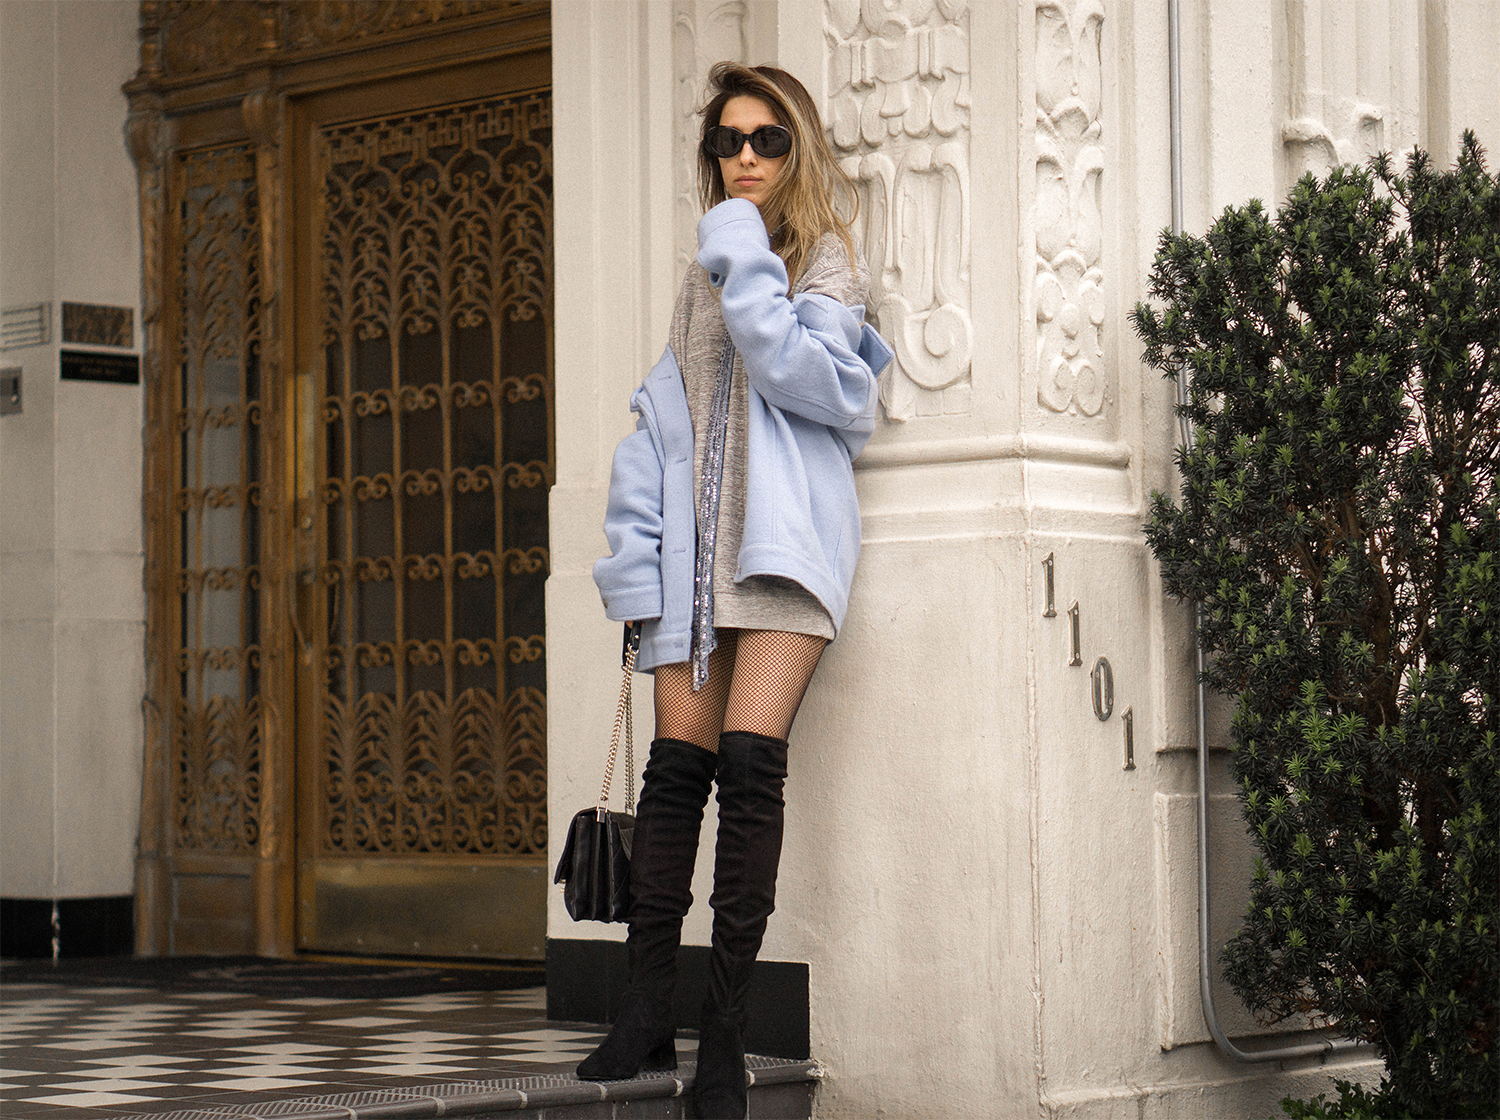 oversized jacket with over the knees_38